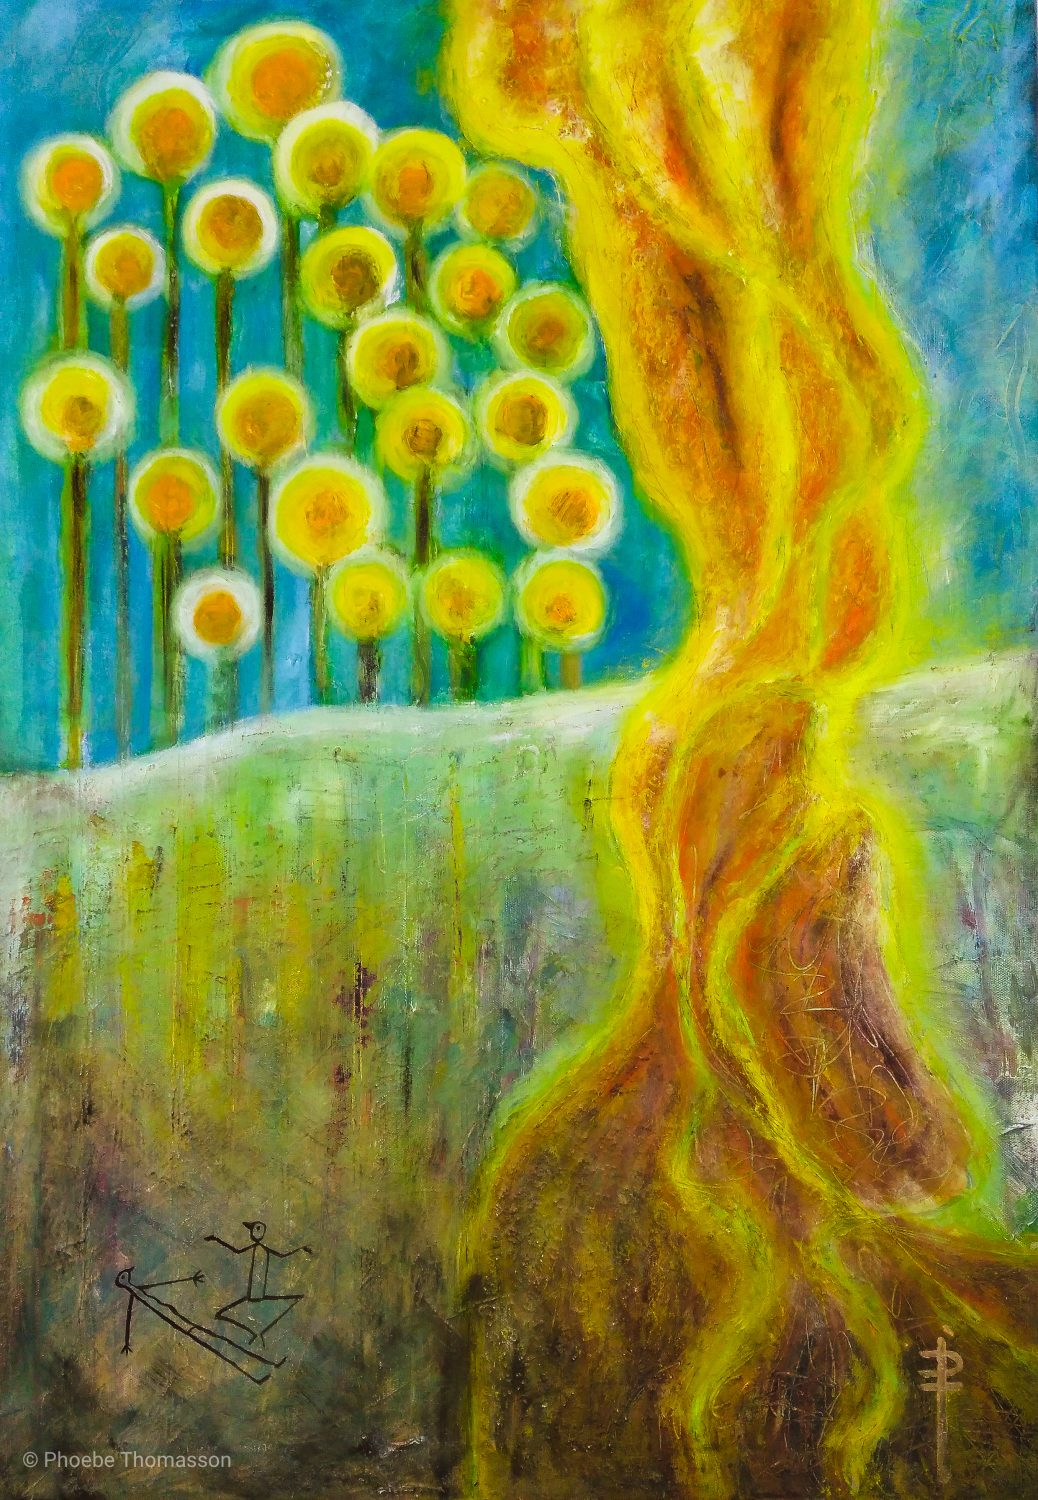 abstract oil painting of a plume of flames with small beads of light in the green landscape